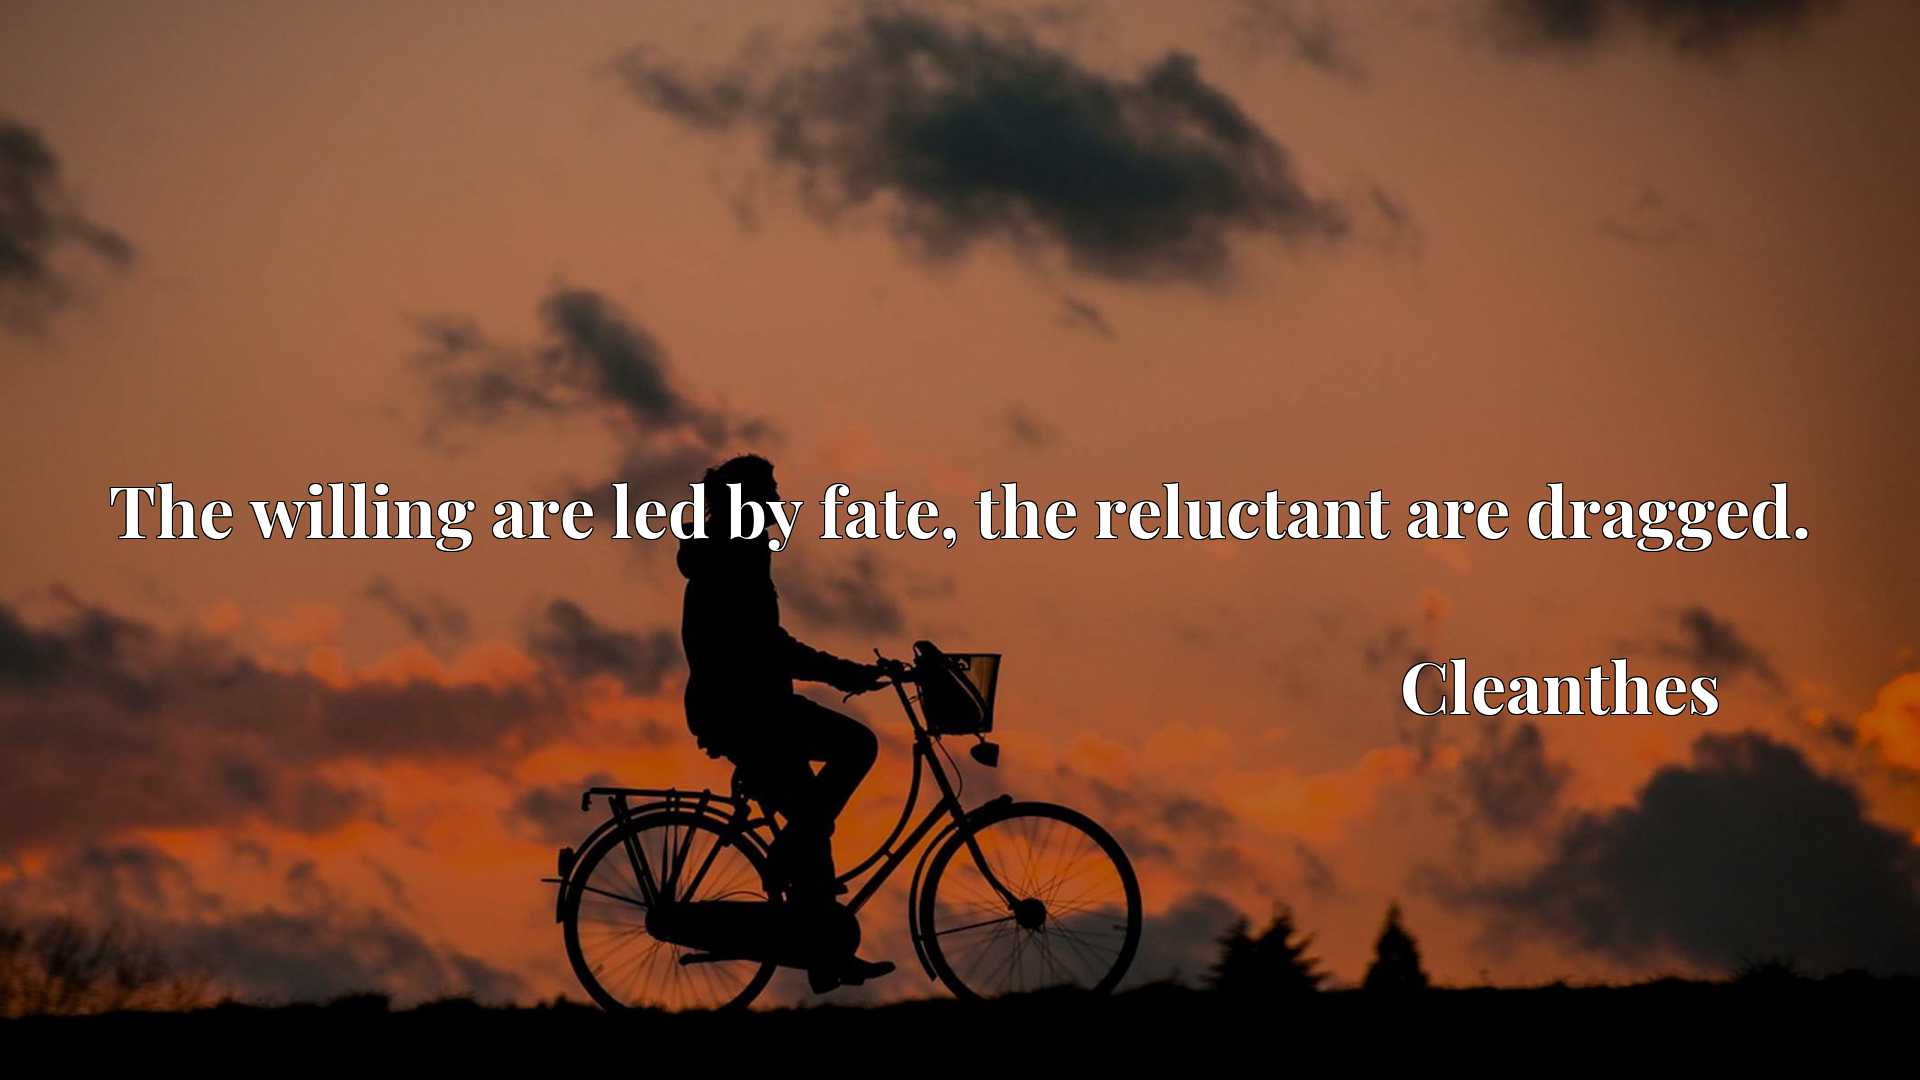 The willing are led by fate, the reluctant are dragged.